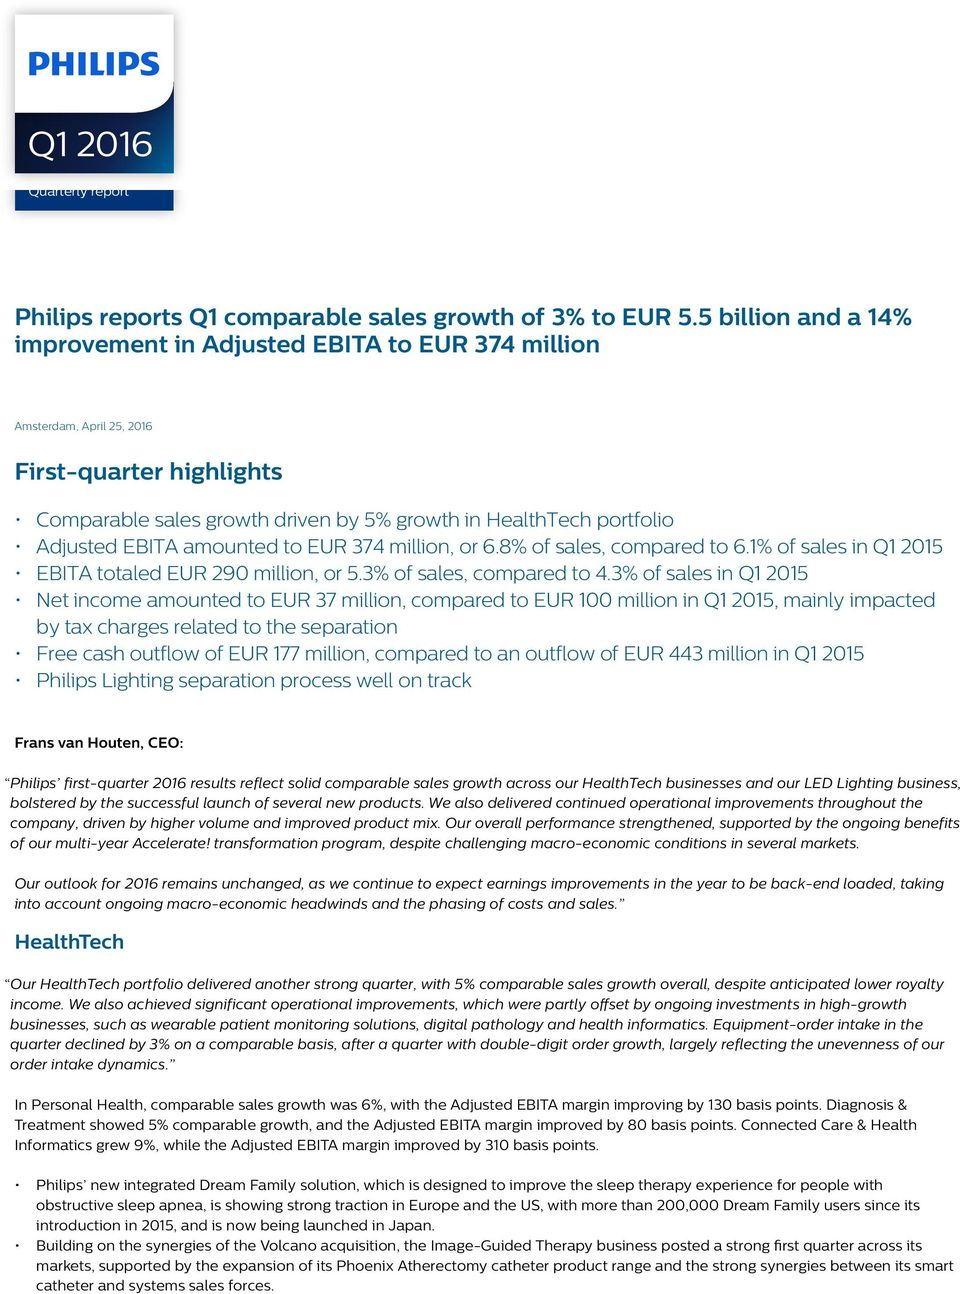 EBITA amounted to EUR 374 million, or 6.8% of sales, compared to 6.1% of sales in Q1 2015 EBITA totaled EUR 290 million, or 5.3% of sales, compared to 4.